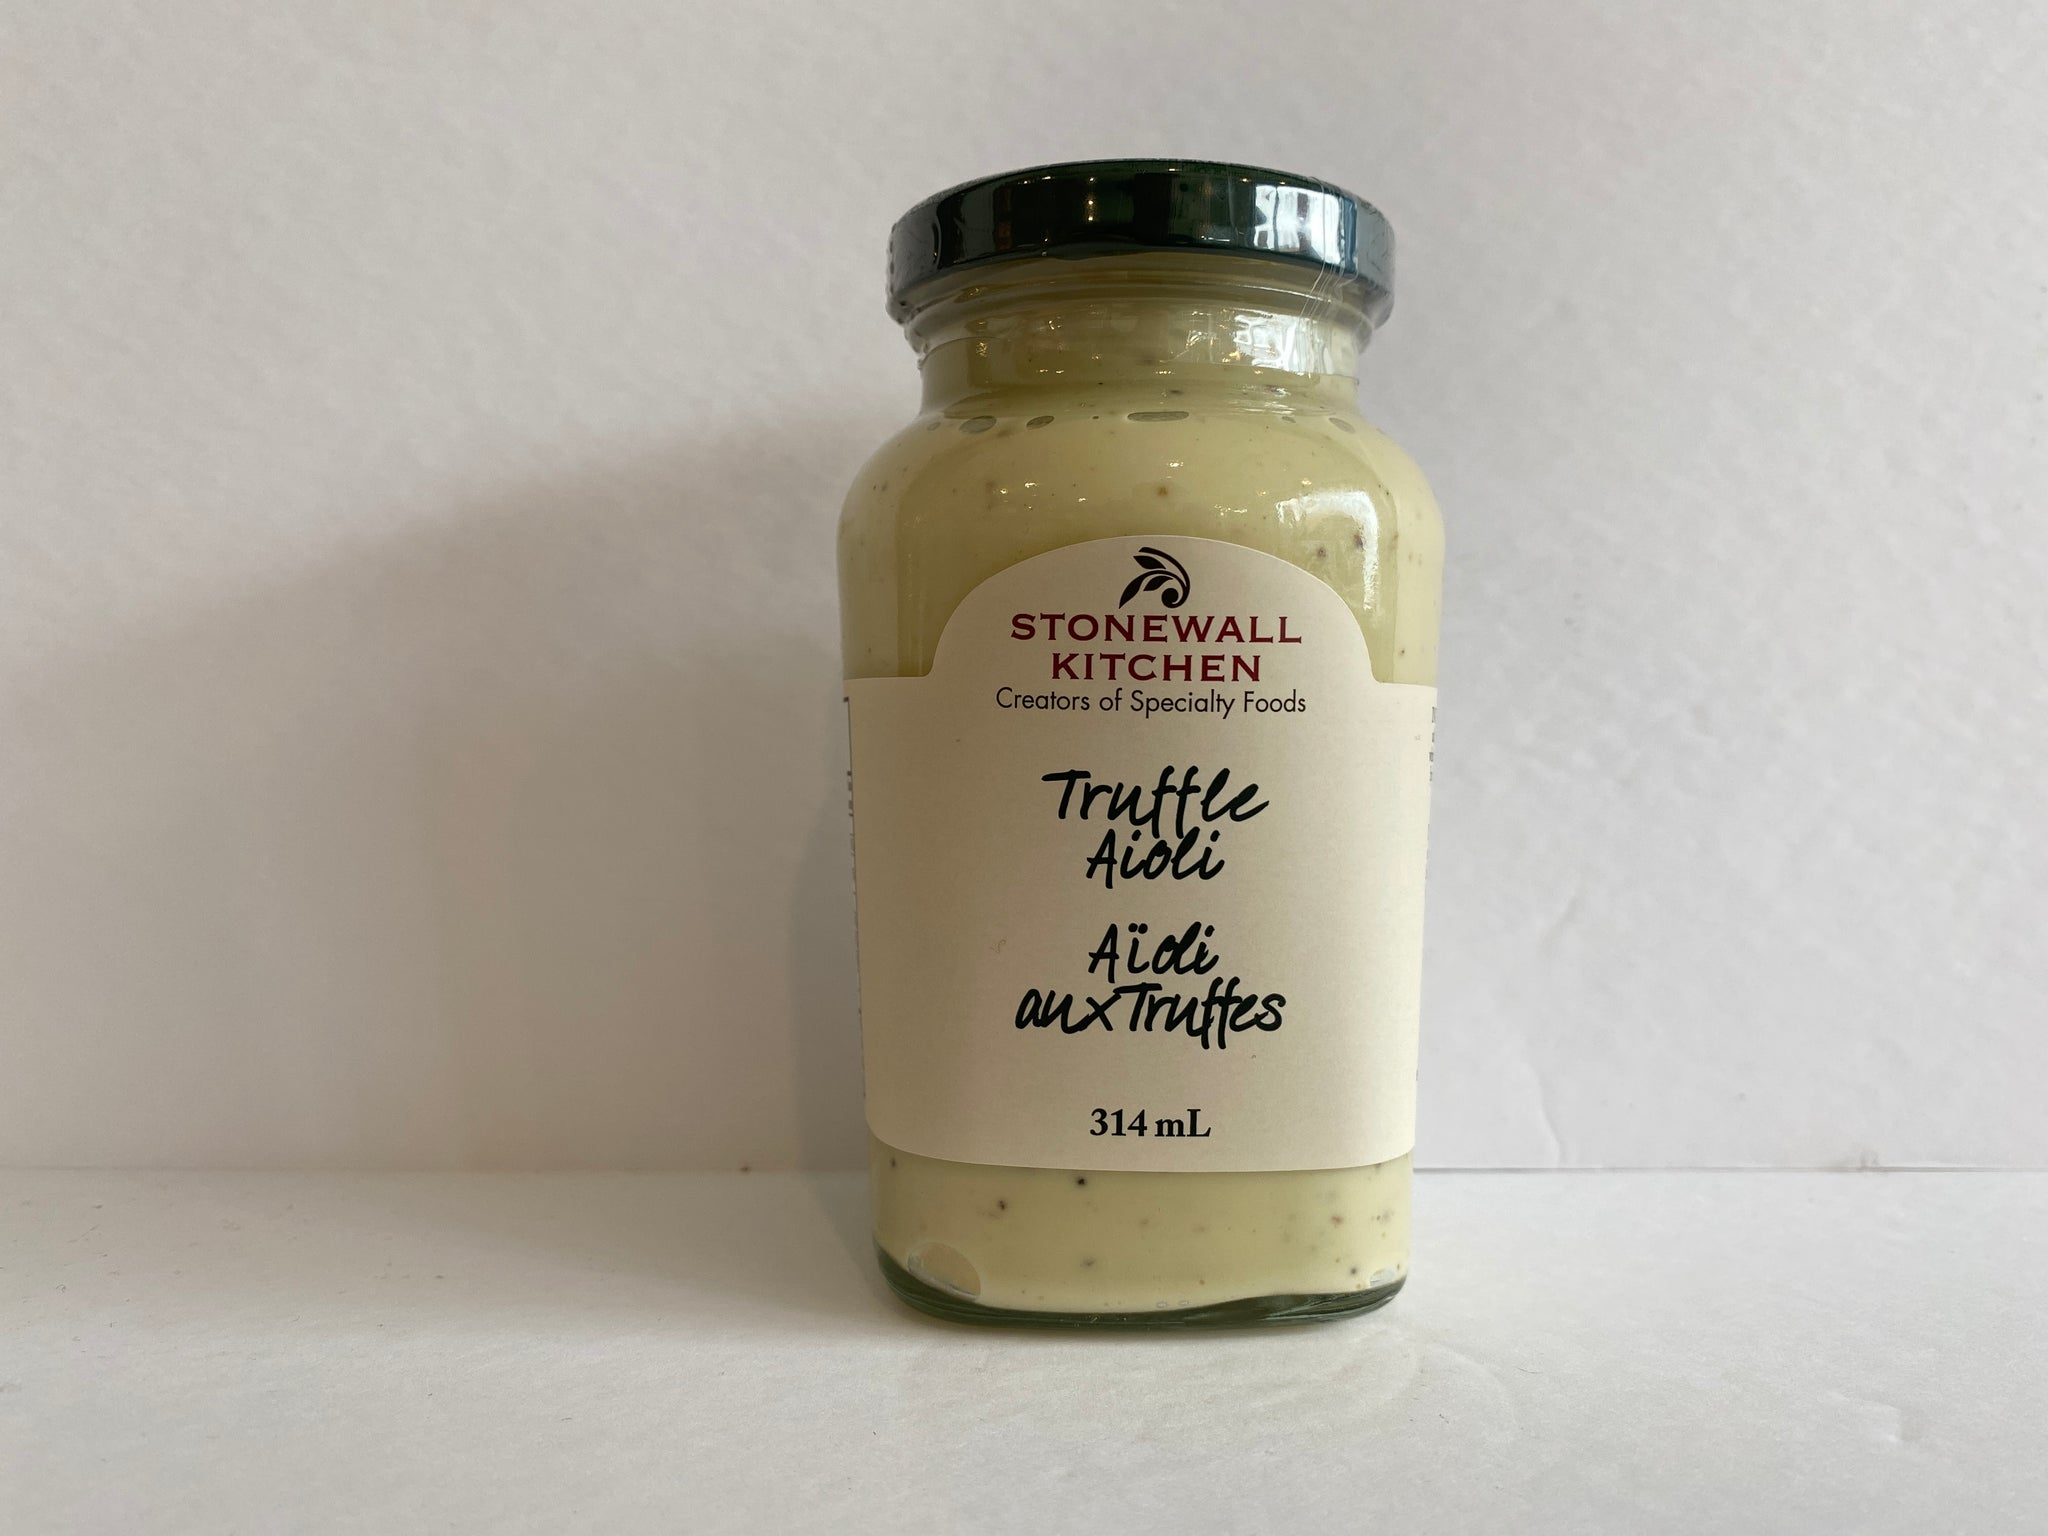 Stonewall Kitchen Truffle Aioli 314mL